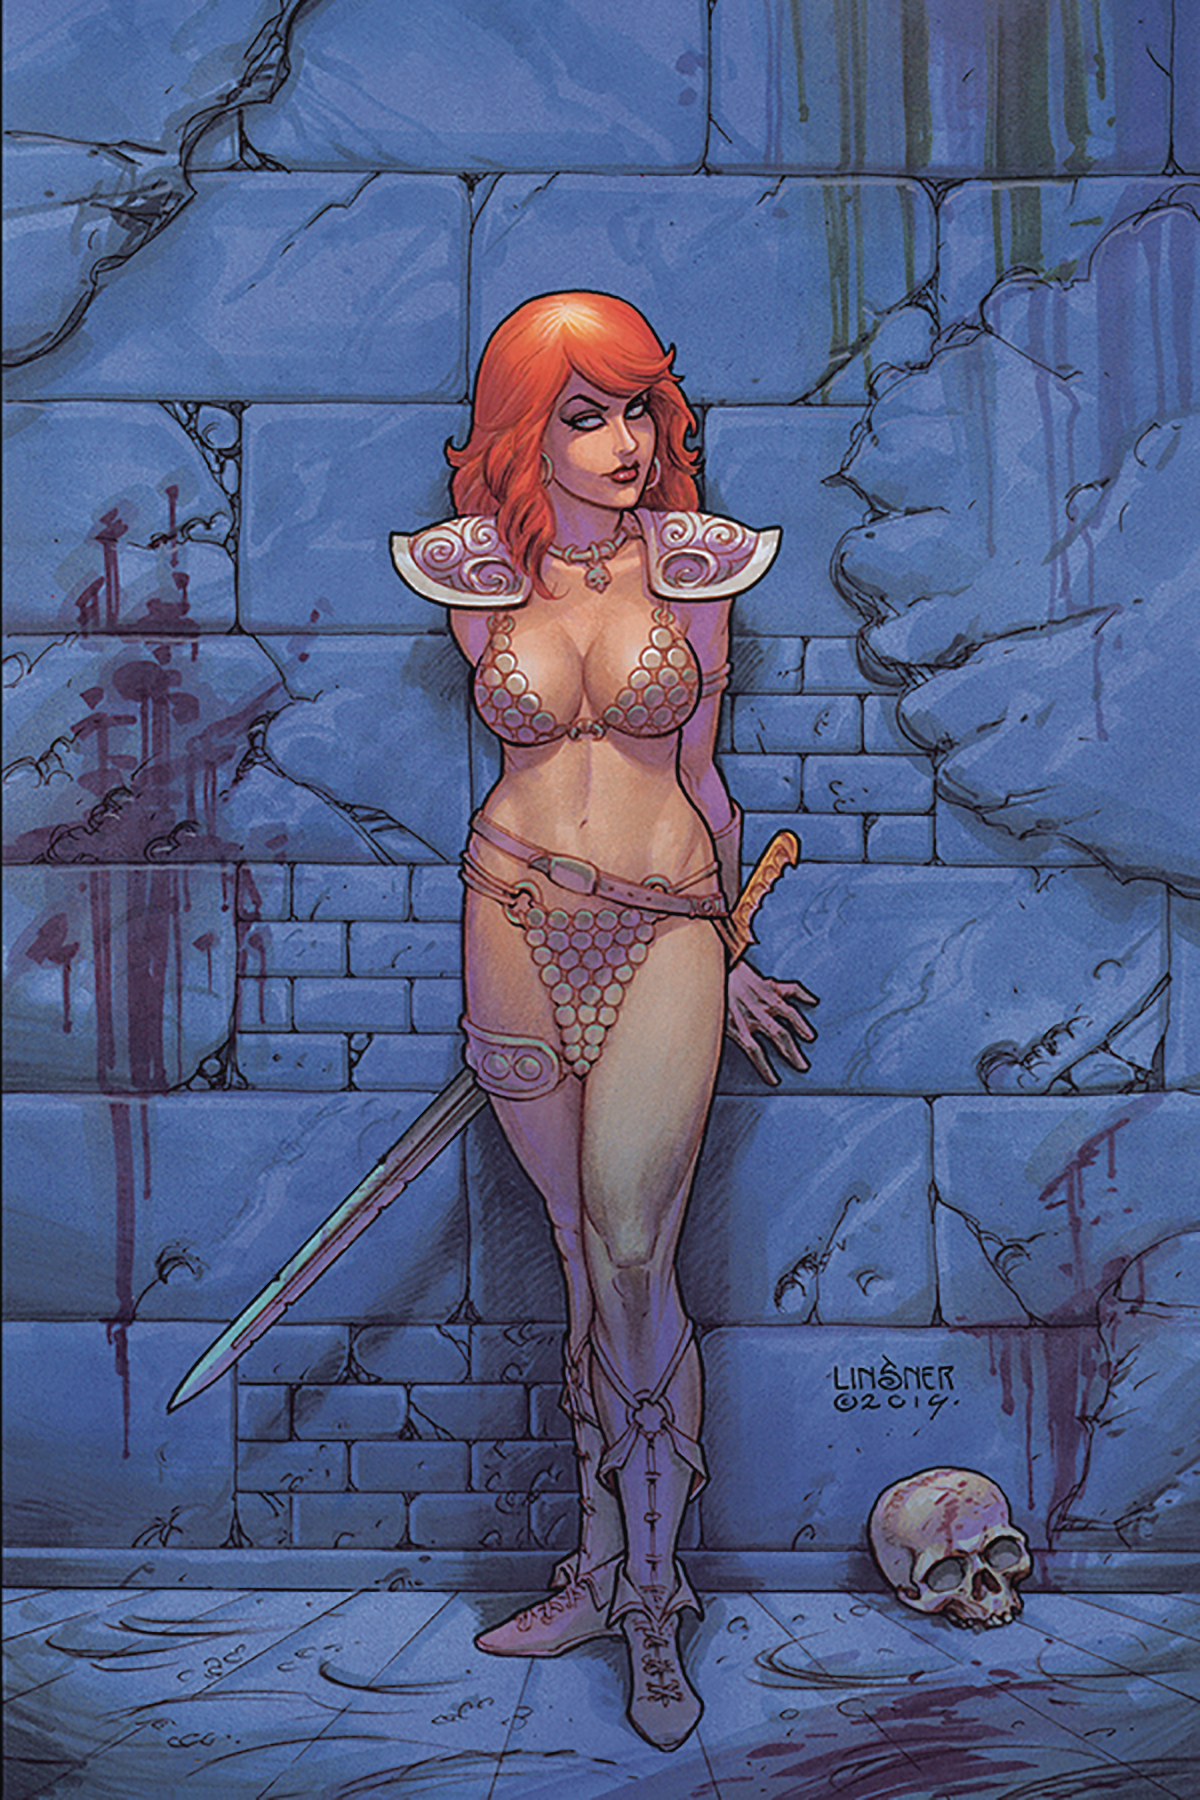 RED SONJA #9 LINSNER VIRGIN CVR